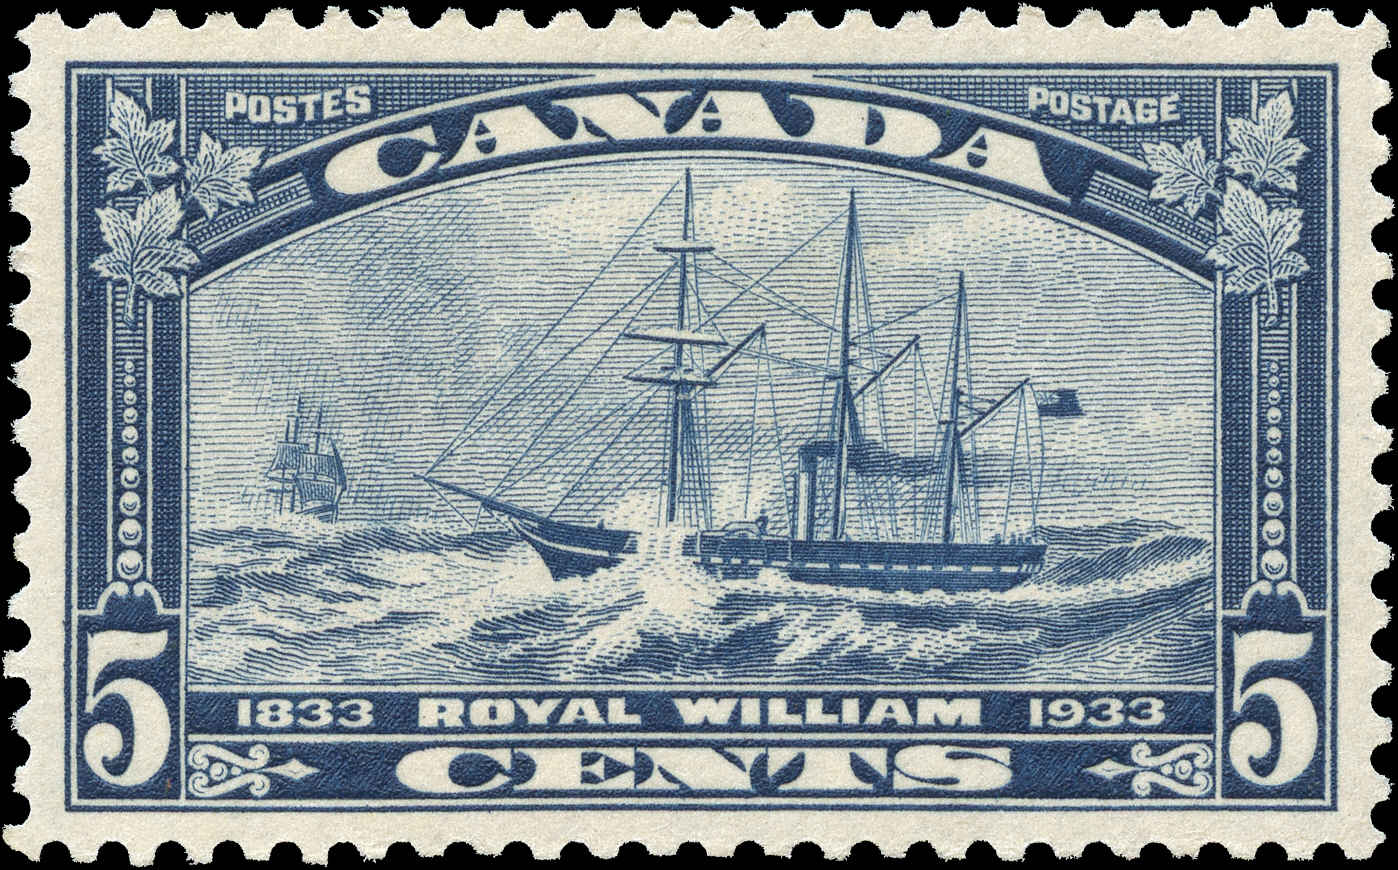 Canada #204, R. William Issue, VF, MH